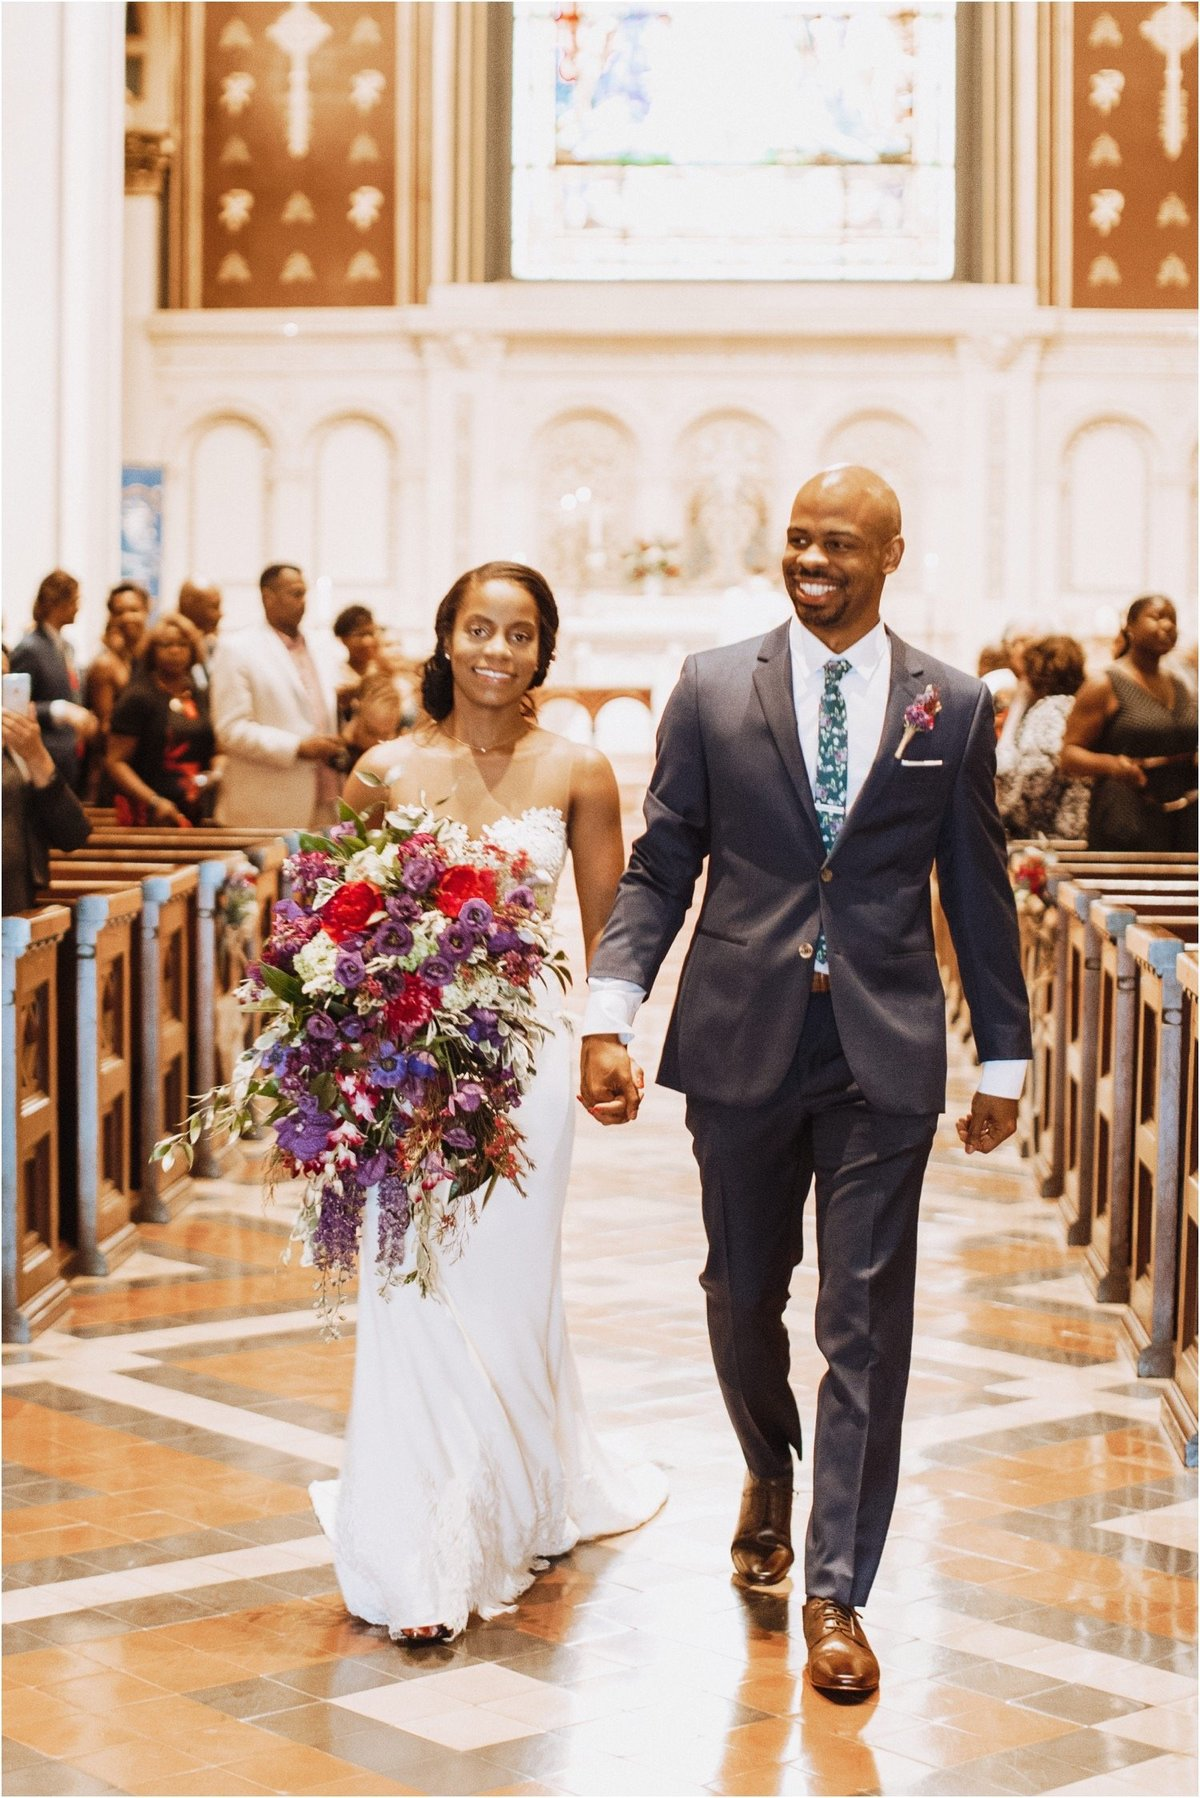 Baltimore, MD wedding coordinator